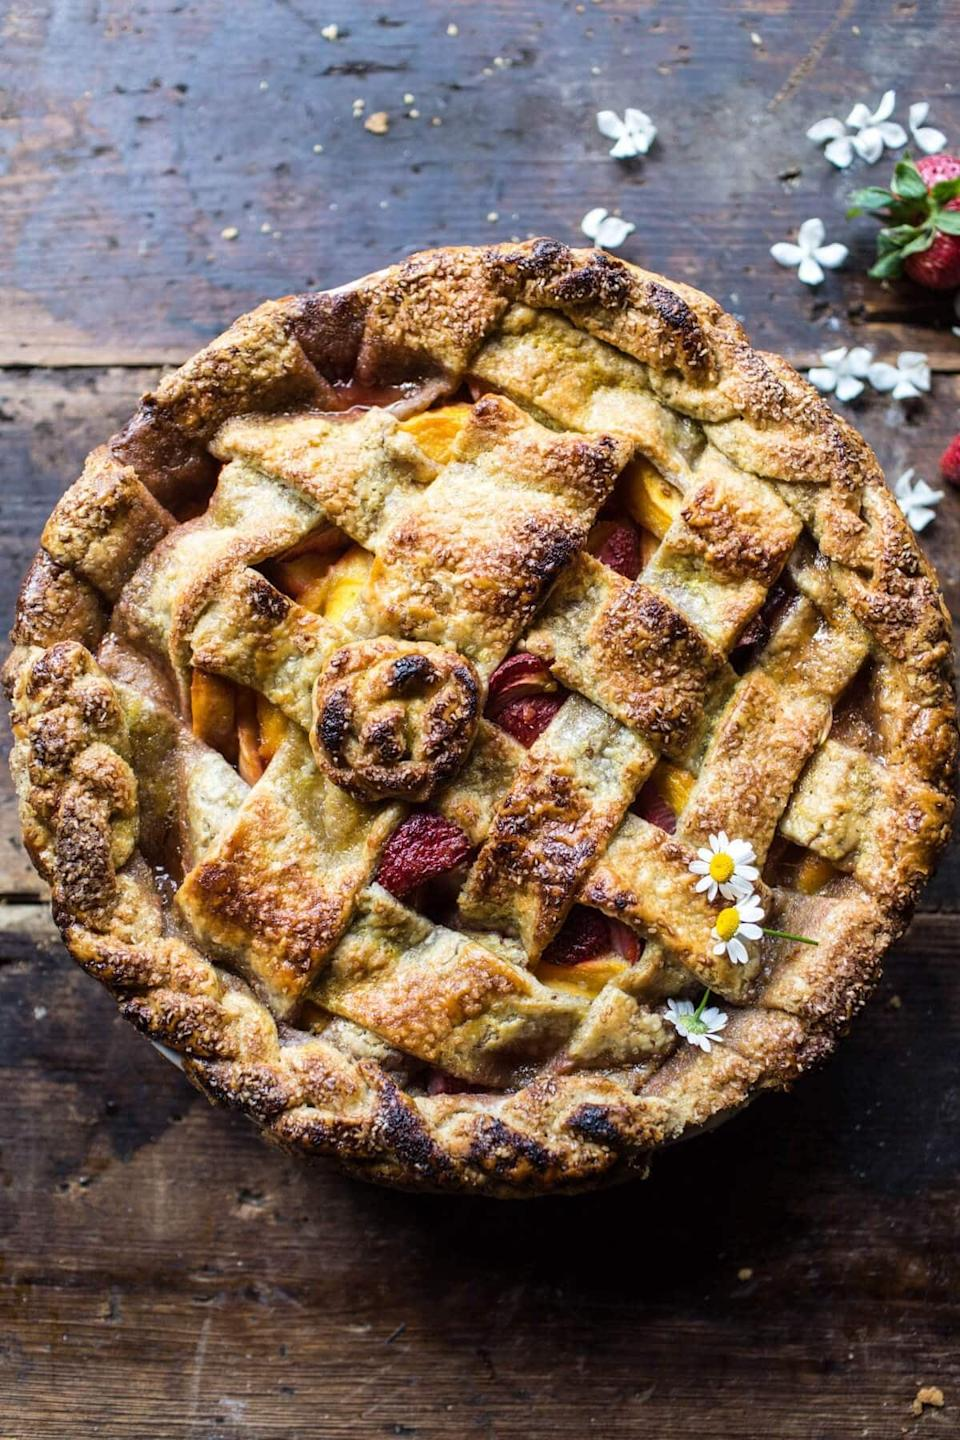 "<p>Fresh peaches and strawberries are mixed with toasted pecans, brown sugar, and honey to make this fresh berry pie. It's perfect for spring or summer, and can even be made in the colder months when you're craving bright and exciting flavors.</p> <p><strong>Get the recipe</strong>: <a href=""https://www.halfbakedharvest.com/honey-strawberry-peach-pie/"" class=""link rapid-noclick-resp"" rel=""nofollow noopener"" target=""_blank"" data-ylk=""slk:honey strawberry peach pie"">honey strawberry peach pie</a></p>"